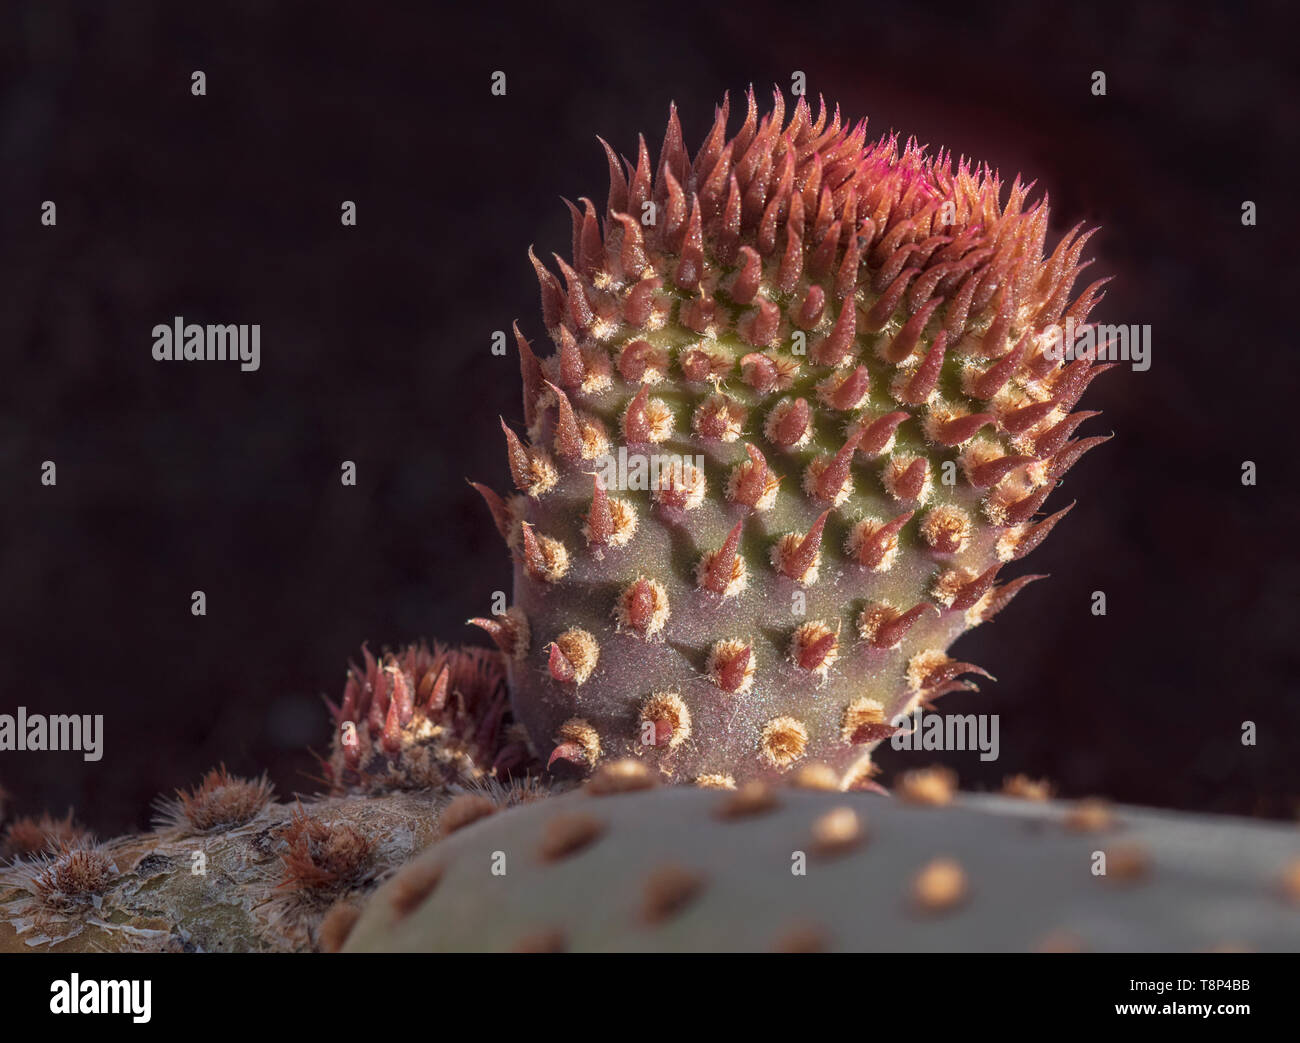 macro of a new emerging branch on a california beavertail cactus pad showing the tiny red leaves on a black background - Stock Image